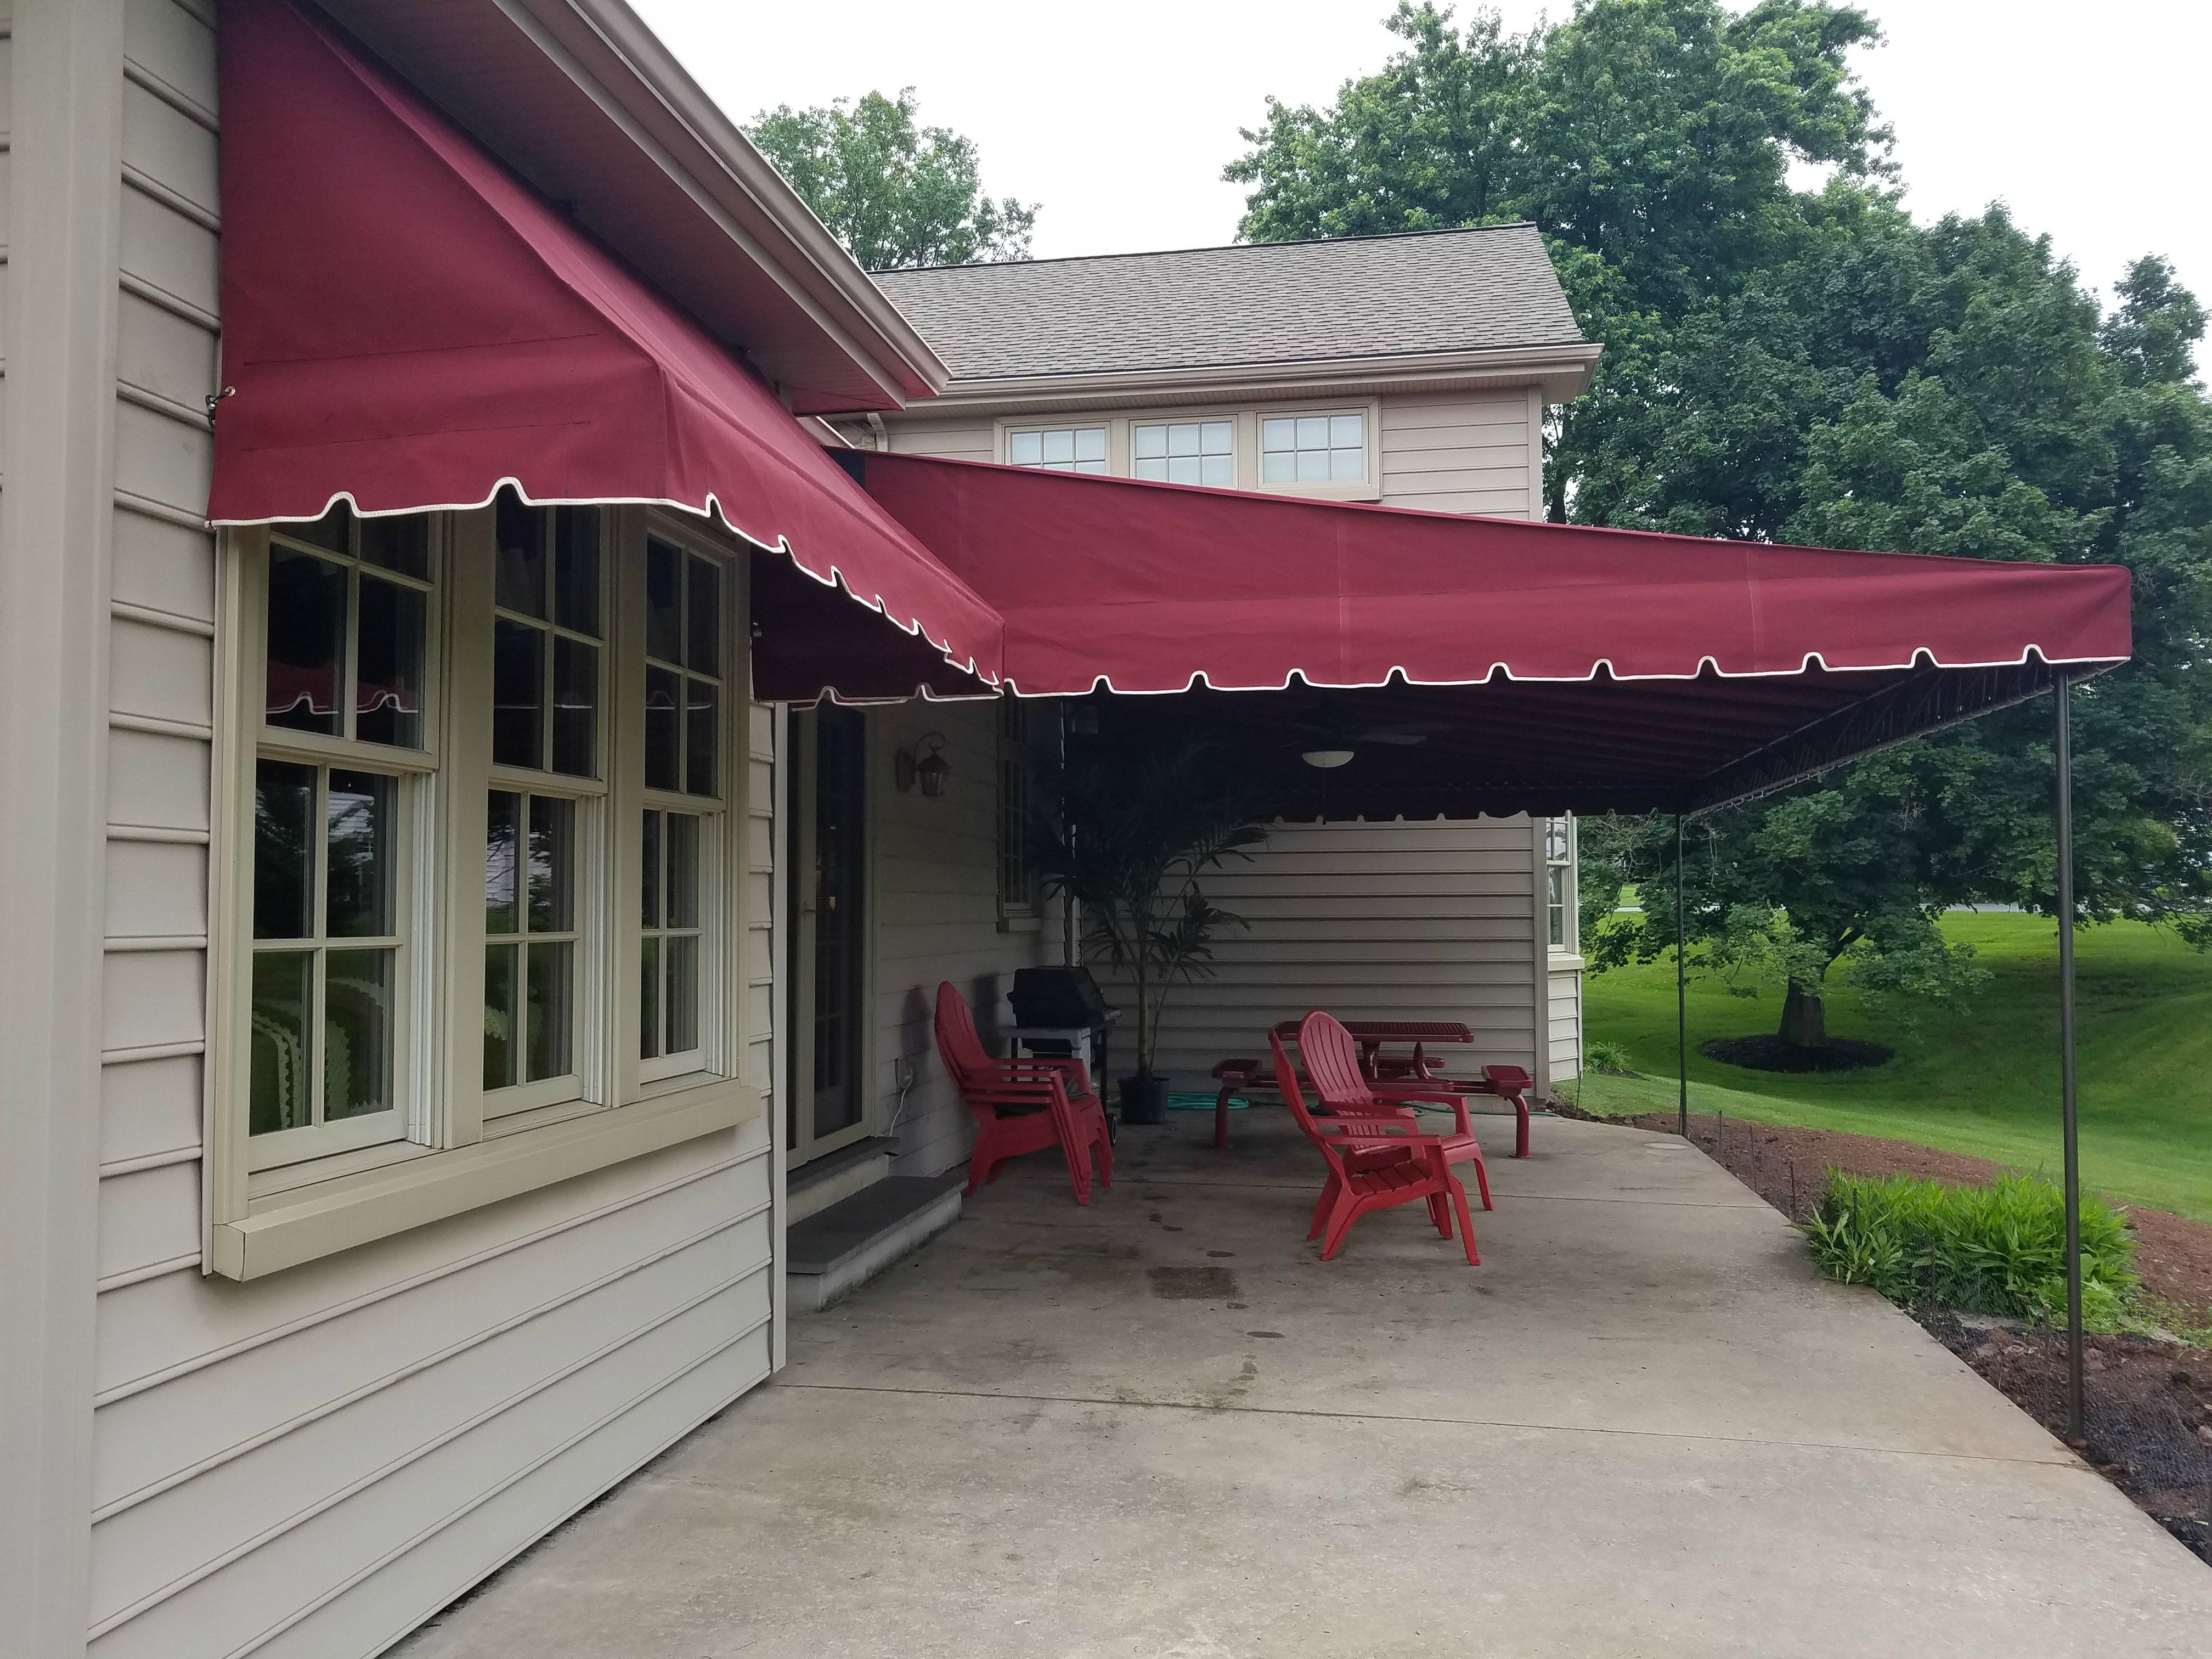 Stay Cool And Dry With A Stationary Canopy Covering Your Patio Area. Add  Matching Window